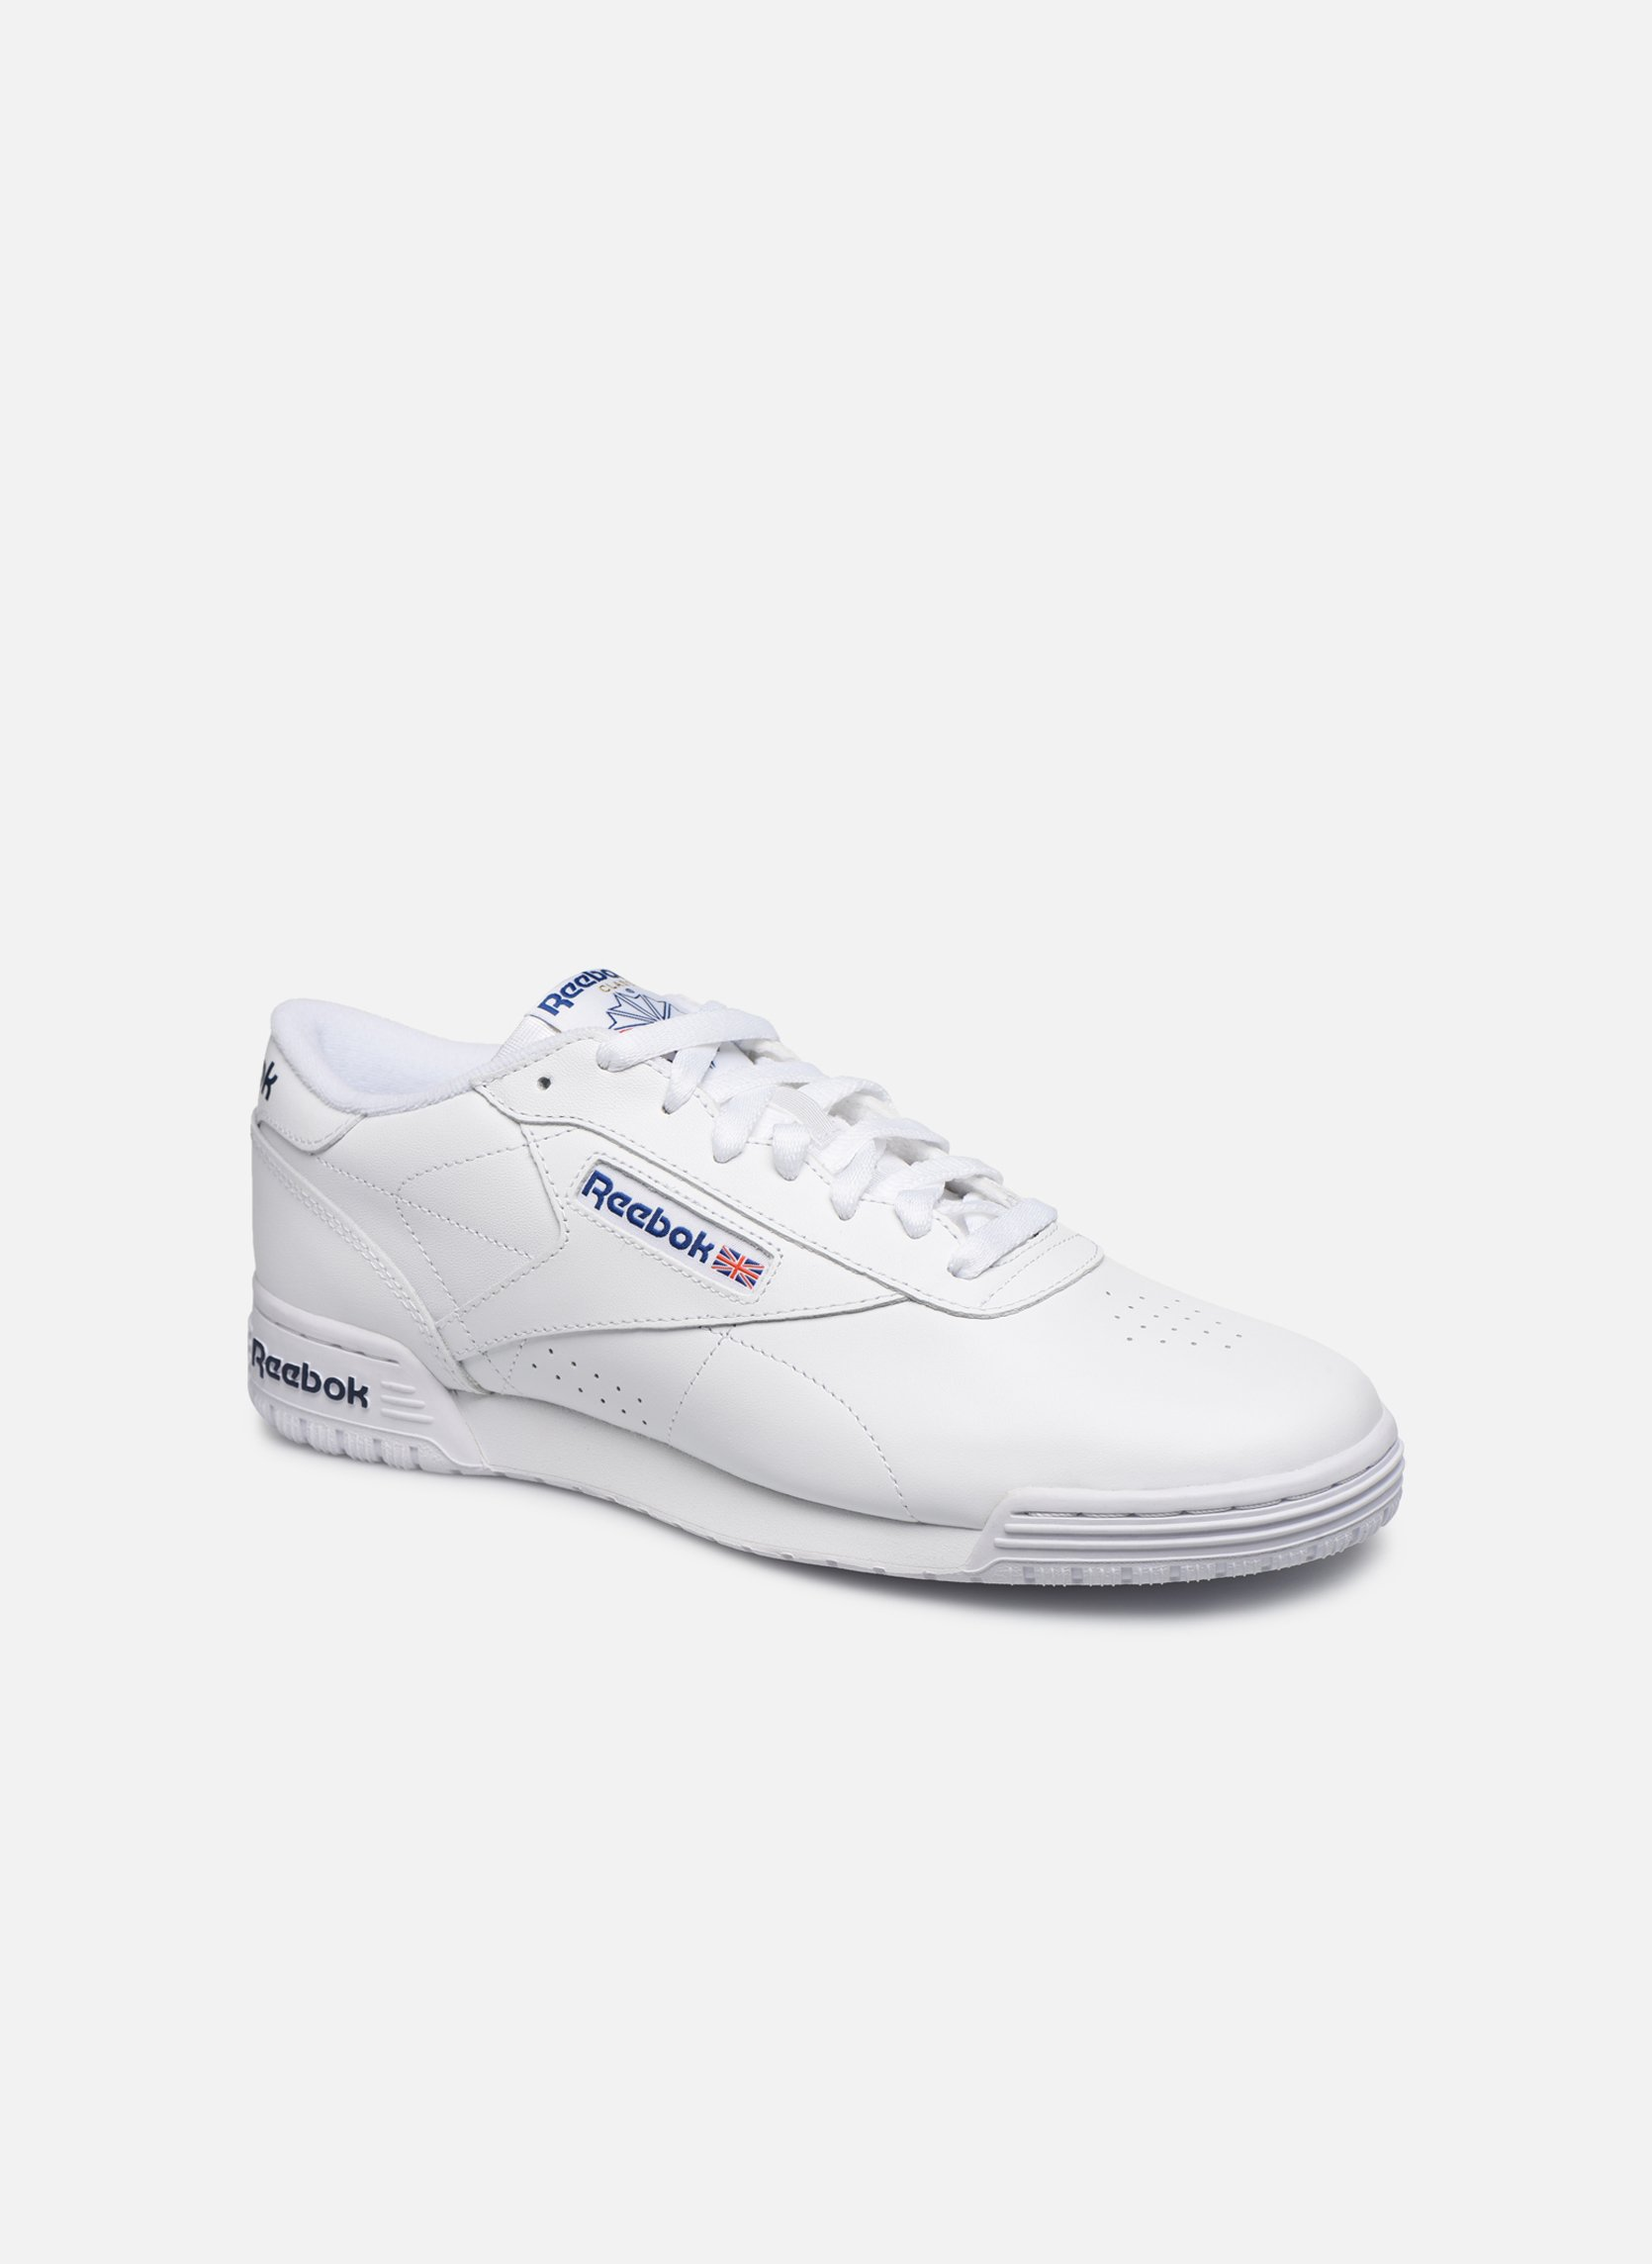 Exofit Lo Clean Logo Int Int-White/Royal Blue/Royal Blue